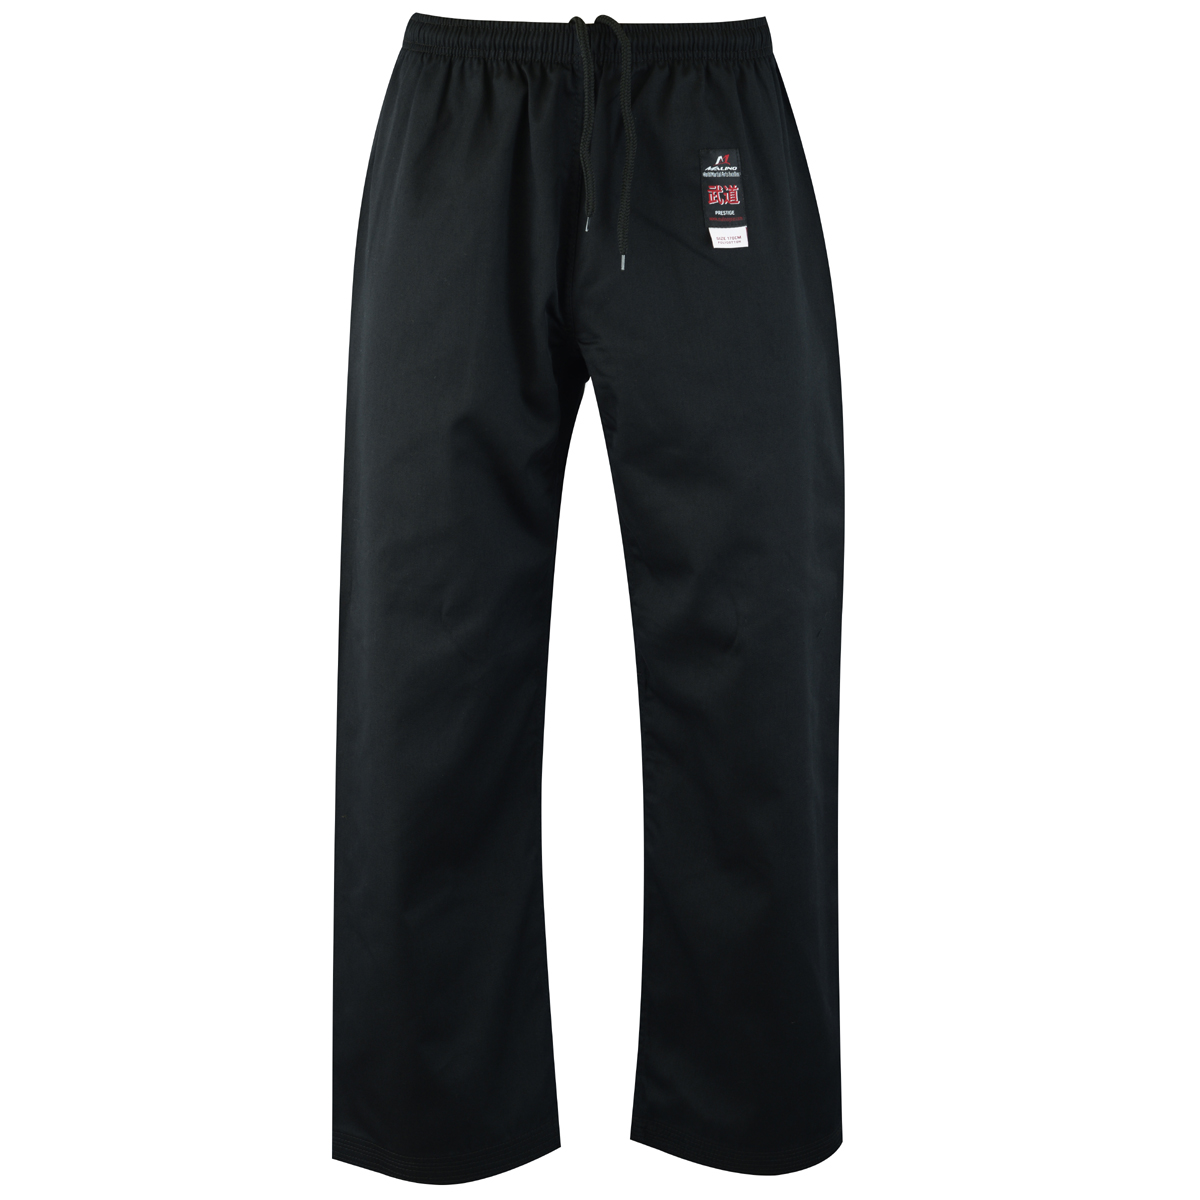 Malino Adult Student Karate Trousers Poly Cotton Black- 7oz